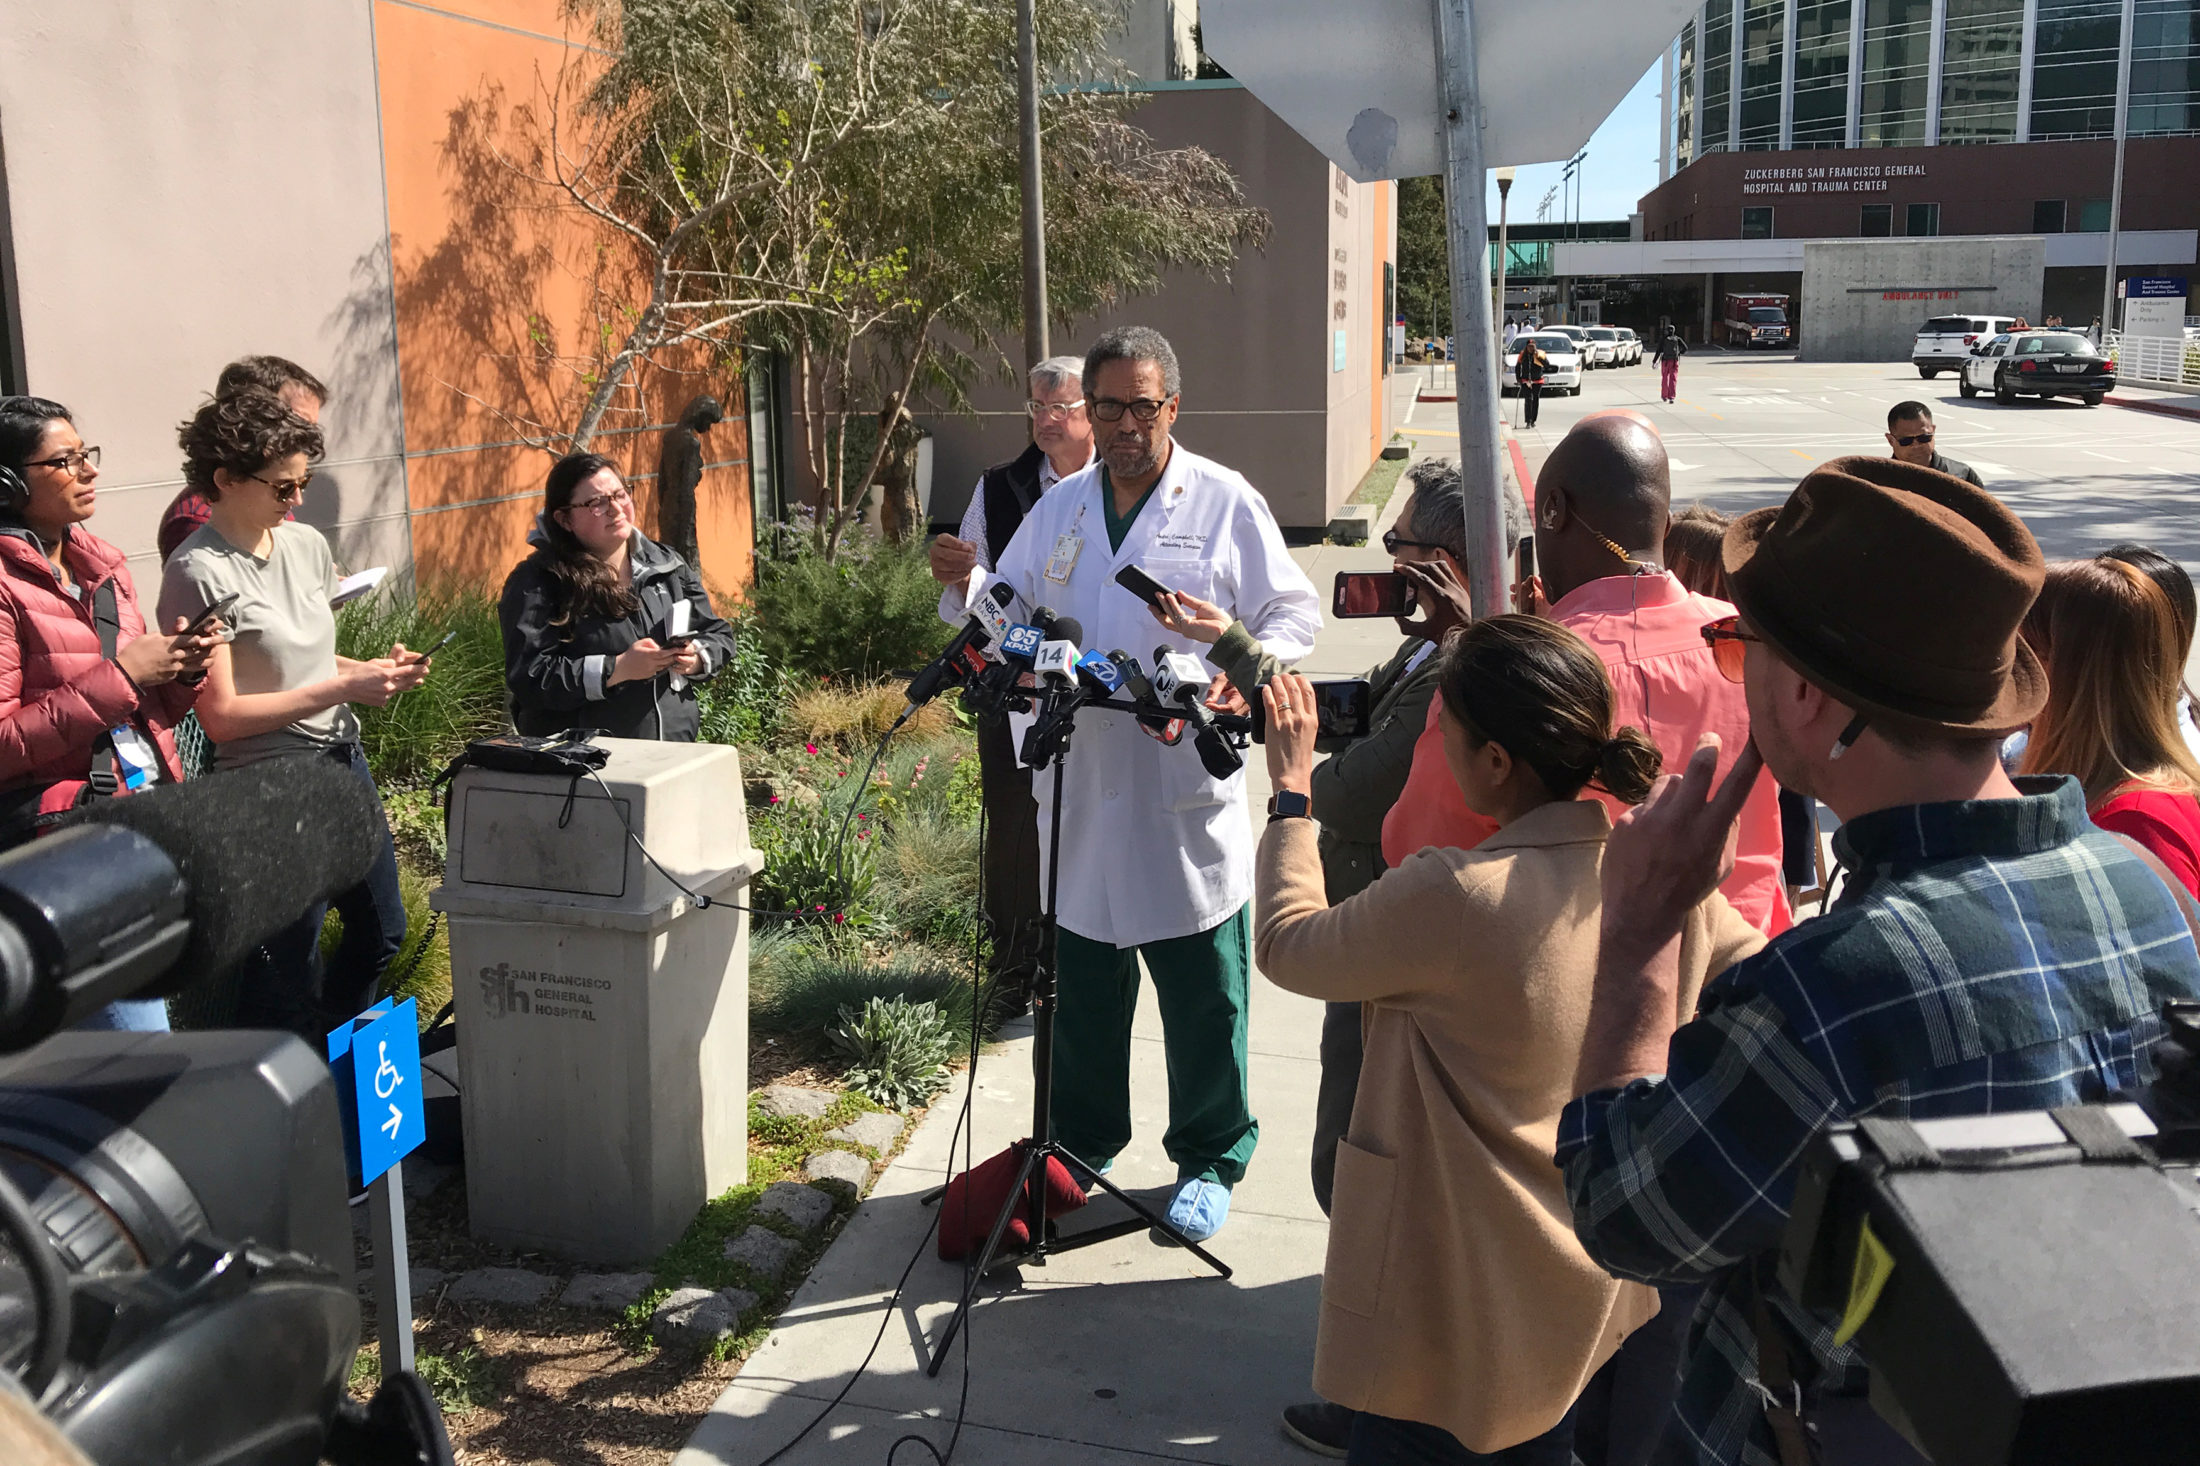 Trauma surgeon Andre Campbell speaks with reporters outside Zuckerberg San Francisco General Hospital and Trauma Center, where three victims were brought following a shooting at YouTube headquarters nearby, in San Francisco, California. Photo by Heather Somerville/Reuters